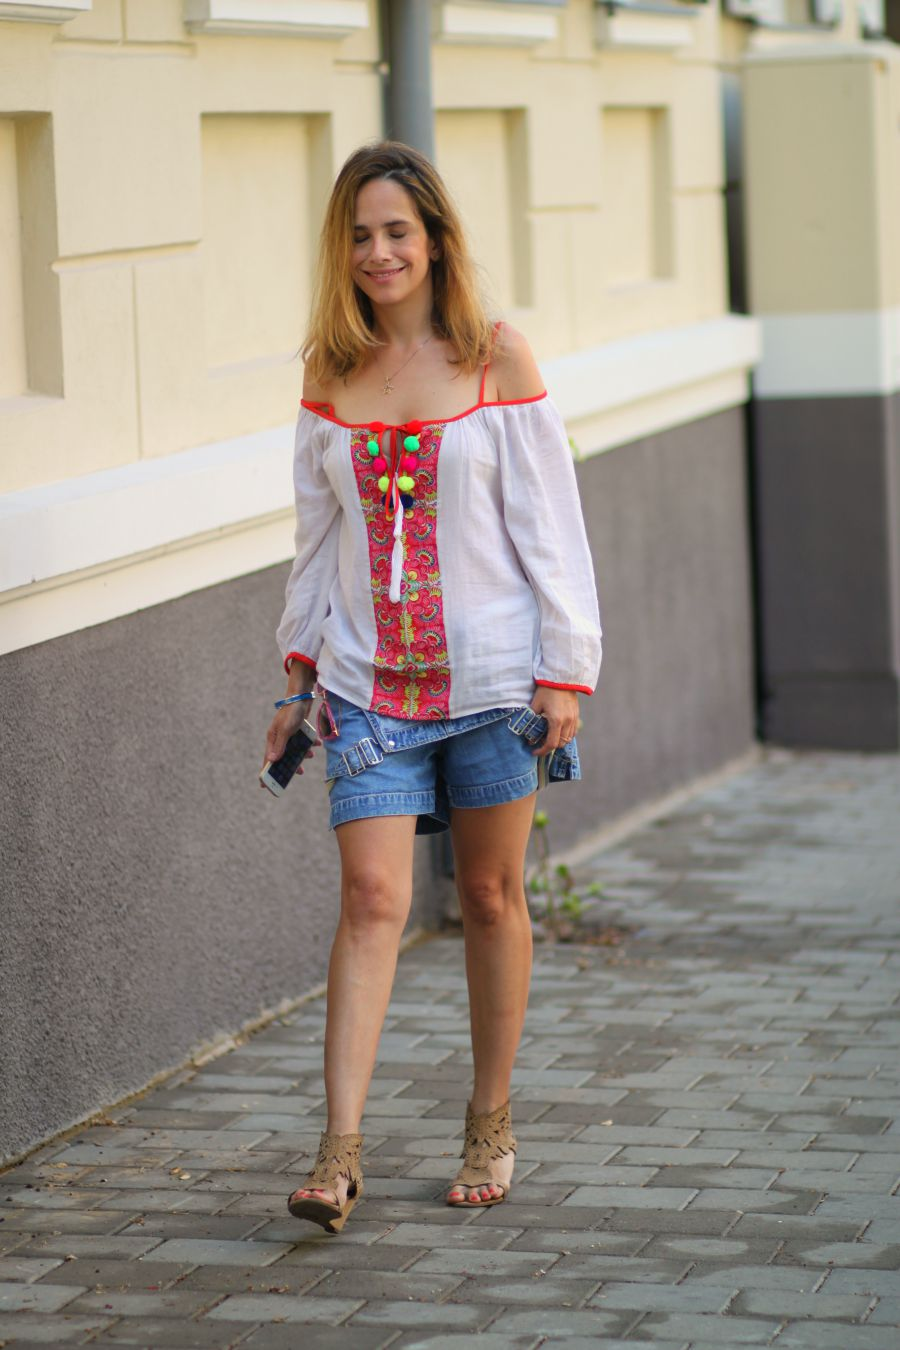 optimist, wear, dungaree, coldshoulder, crisophesauvat, denim, ootd, lookoftheday, fashionblog, summer2015, streetstylejuly2015, אופנה, בלוגאופנה